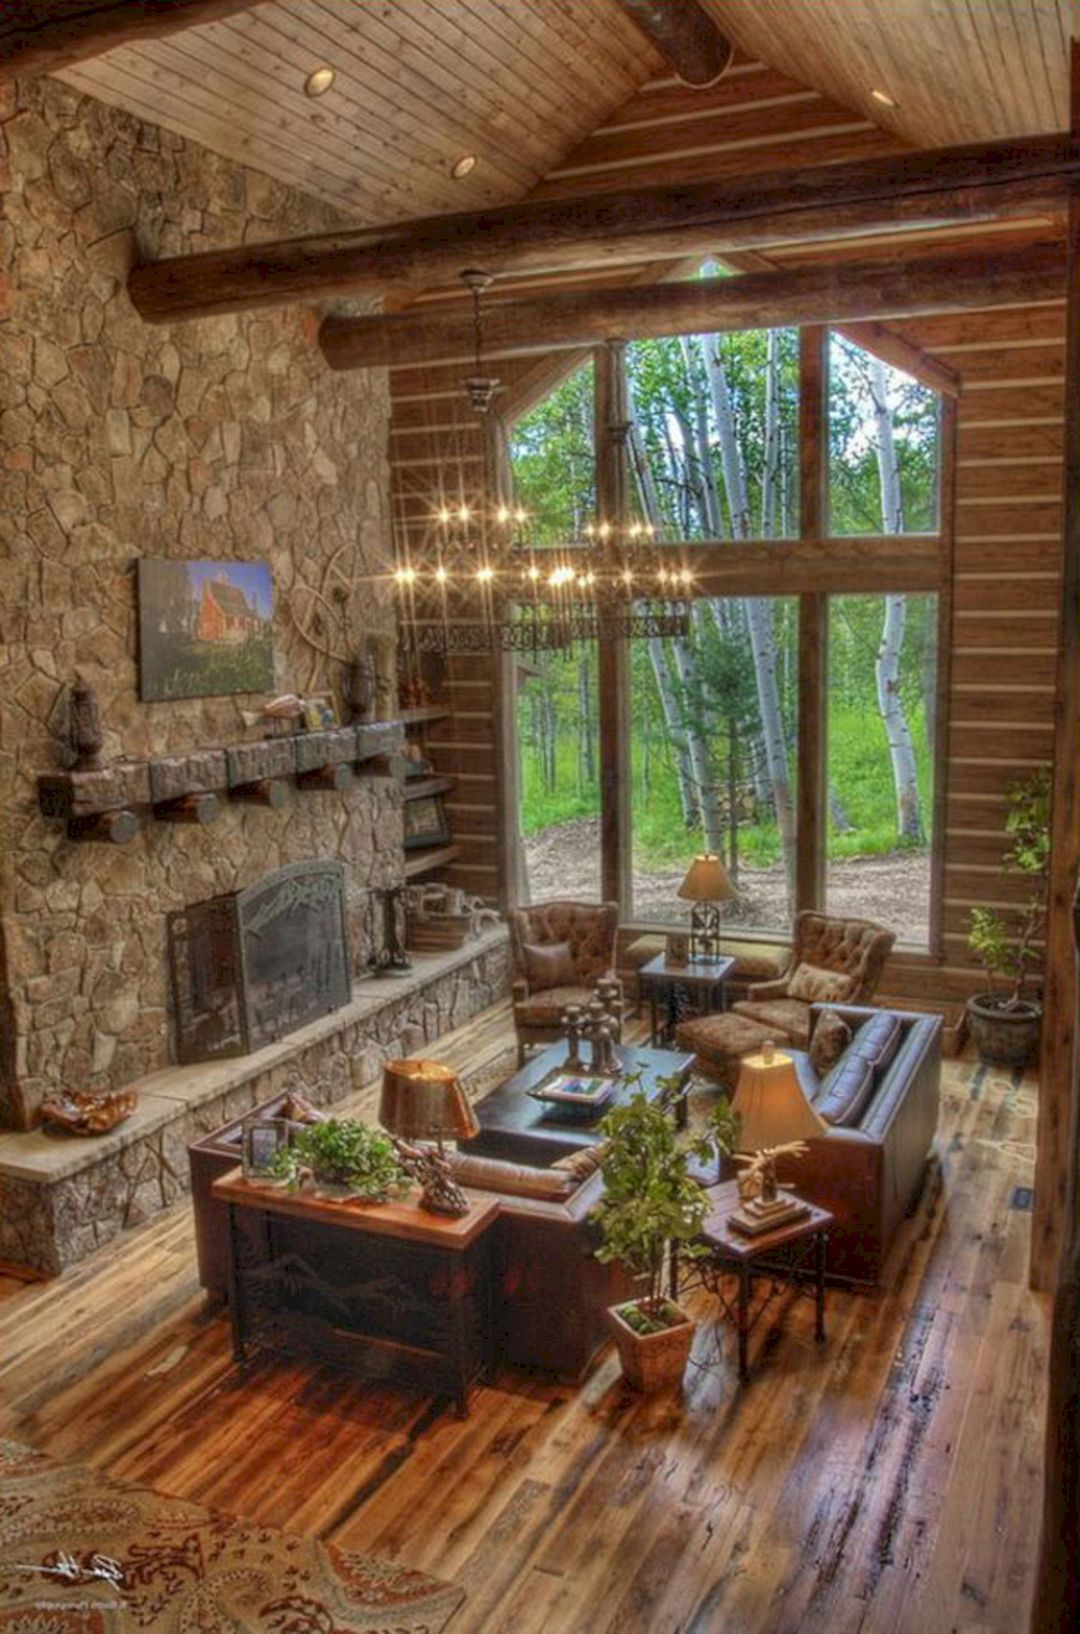 49 Superb Cozy And Rustic Cabin Style Living Rooms Ideas Freshouz Com Rustic House Cabin Style Rustic Cabin